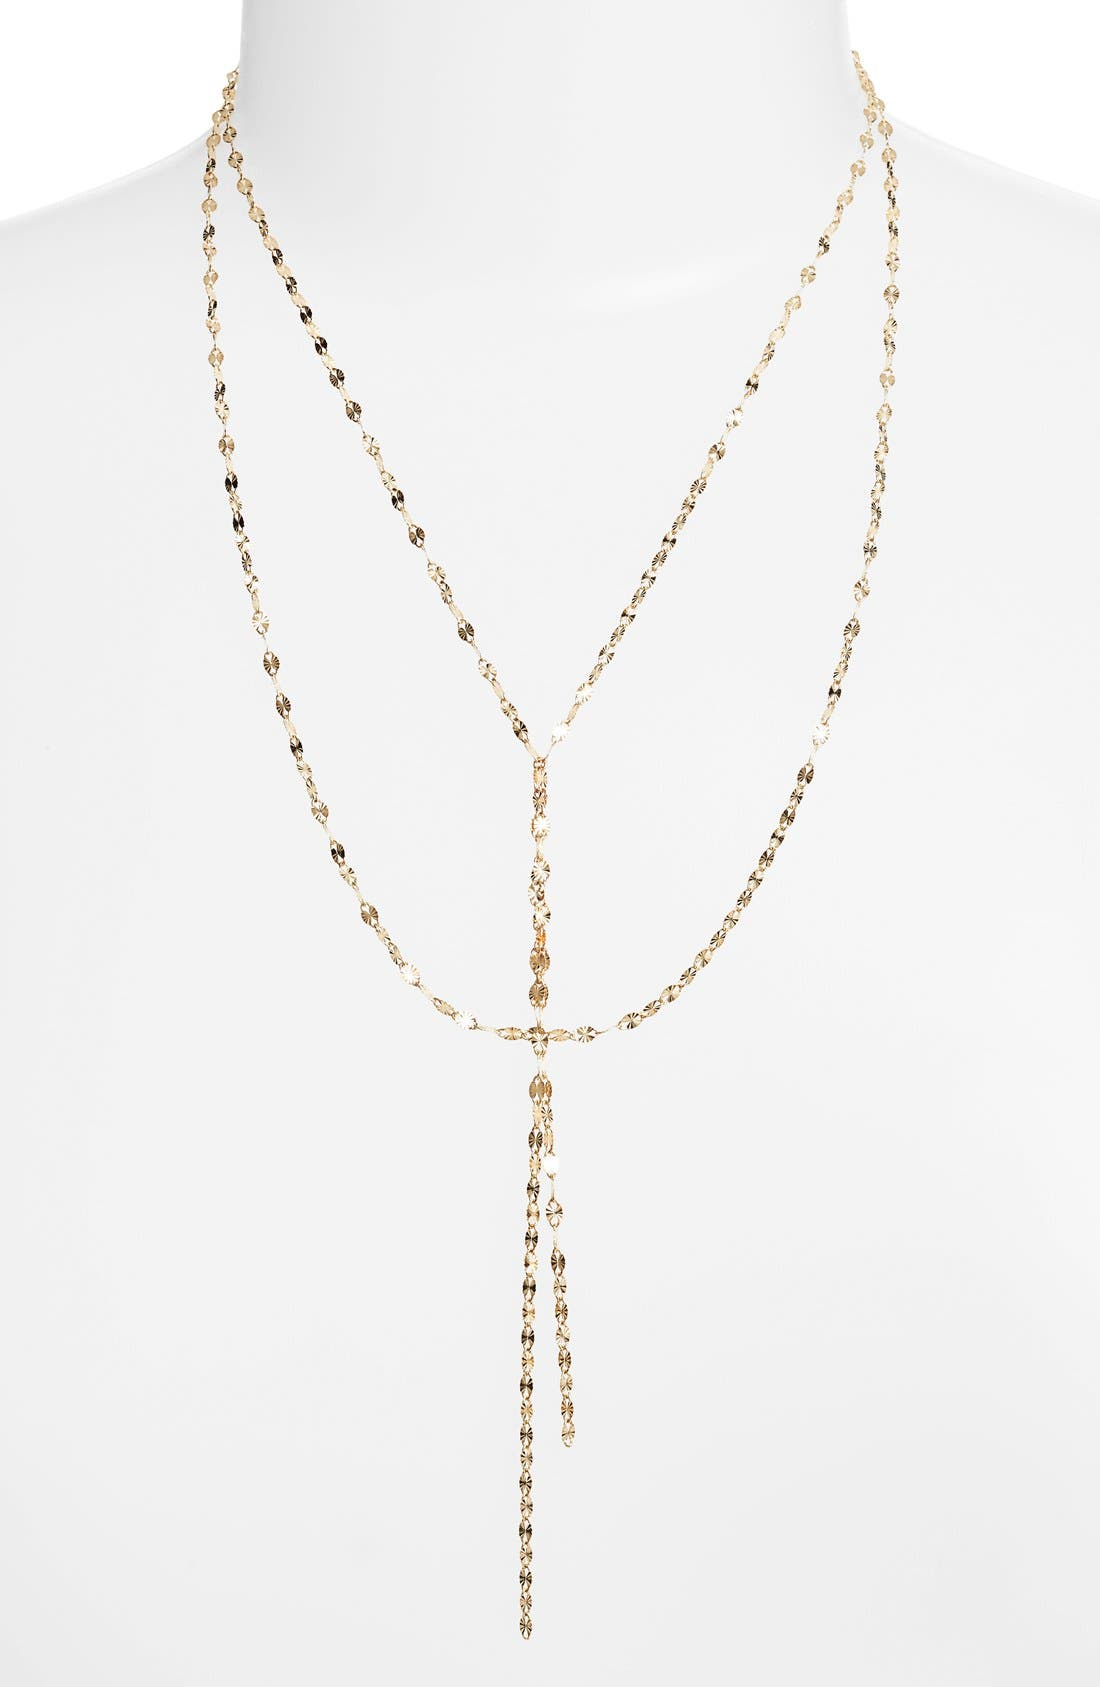 Lana Jewelry 'Mega Blake' Lariat Necklace